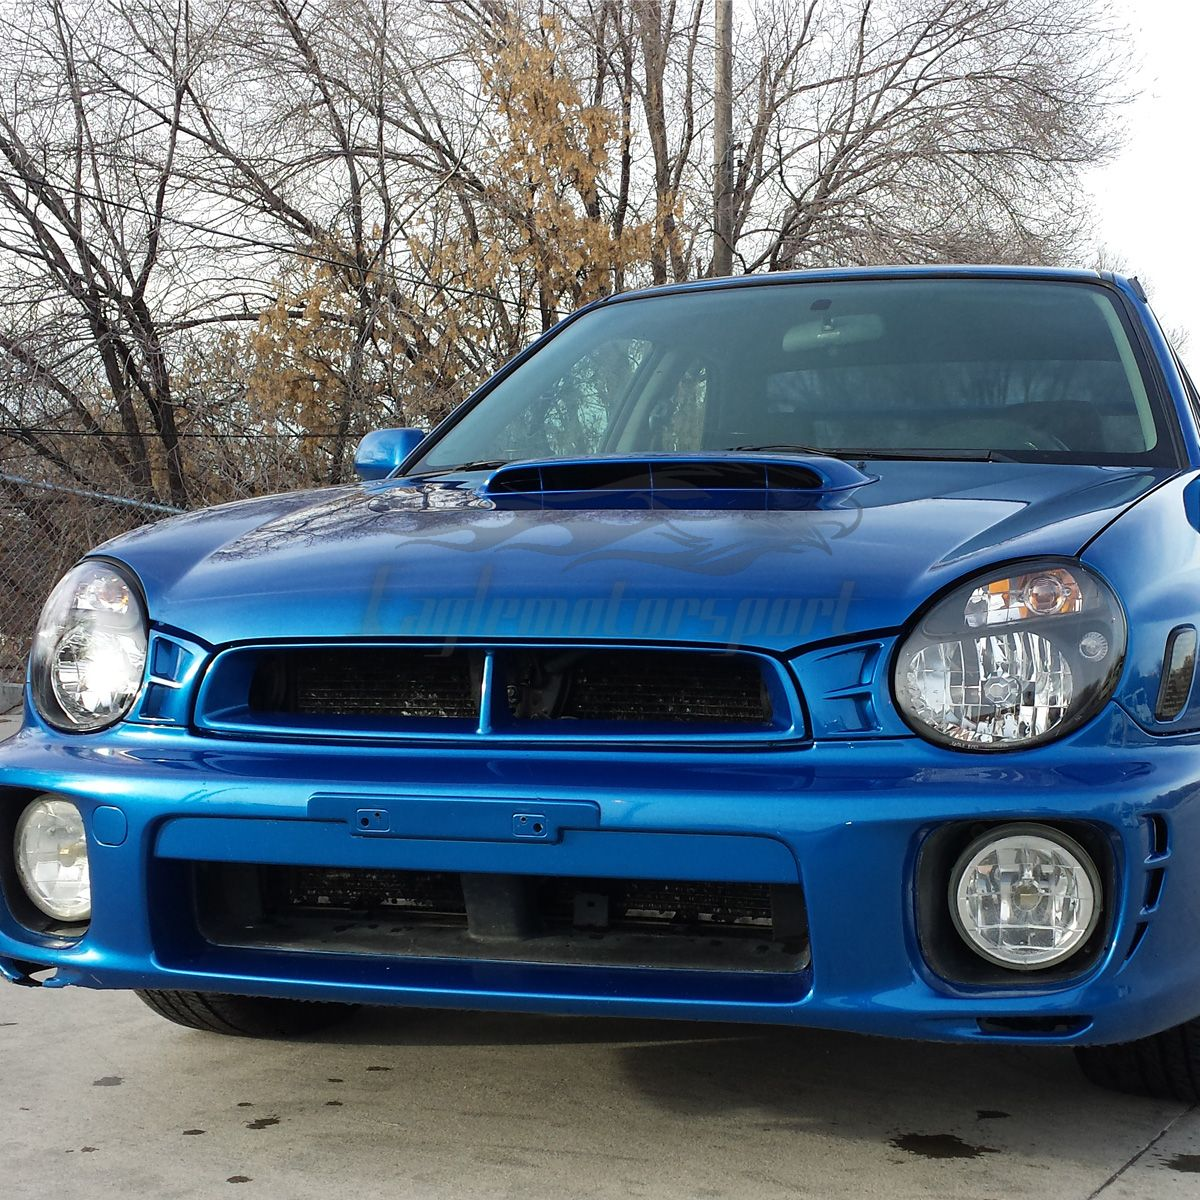 2002 2003 subaru impreza wrx sti black headlights factory style head lamps pair ebay. Black Bedroom Furniture Sets. Home Design Ideas